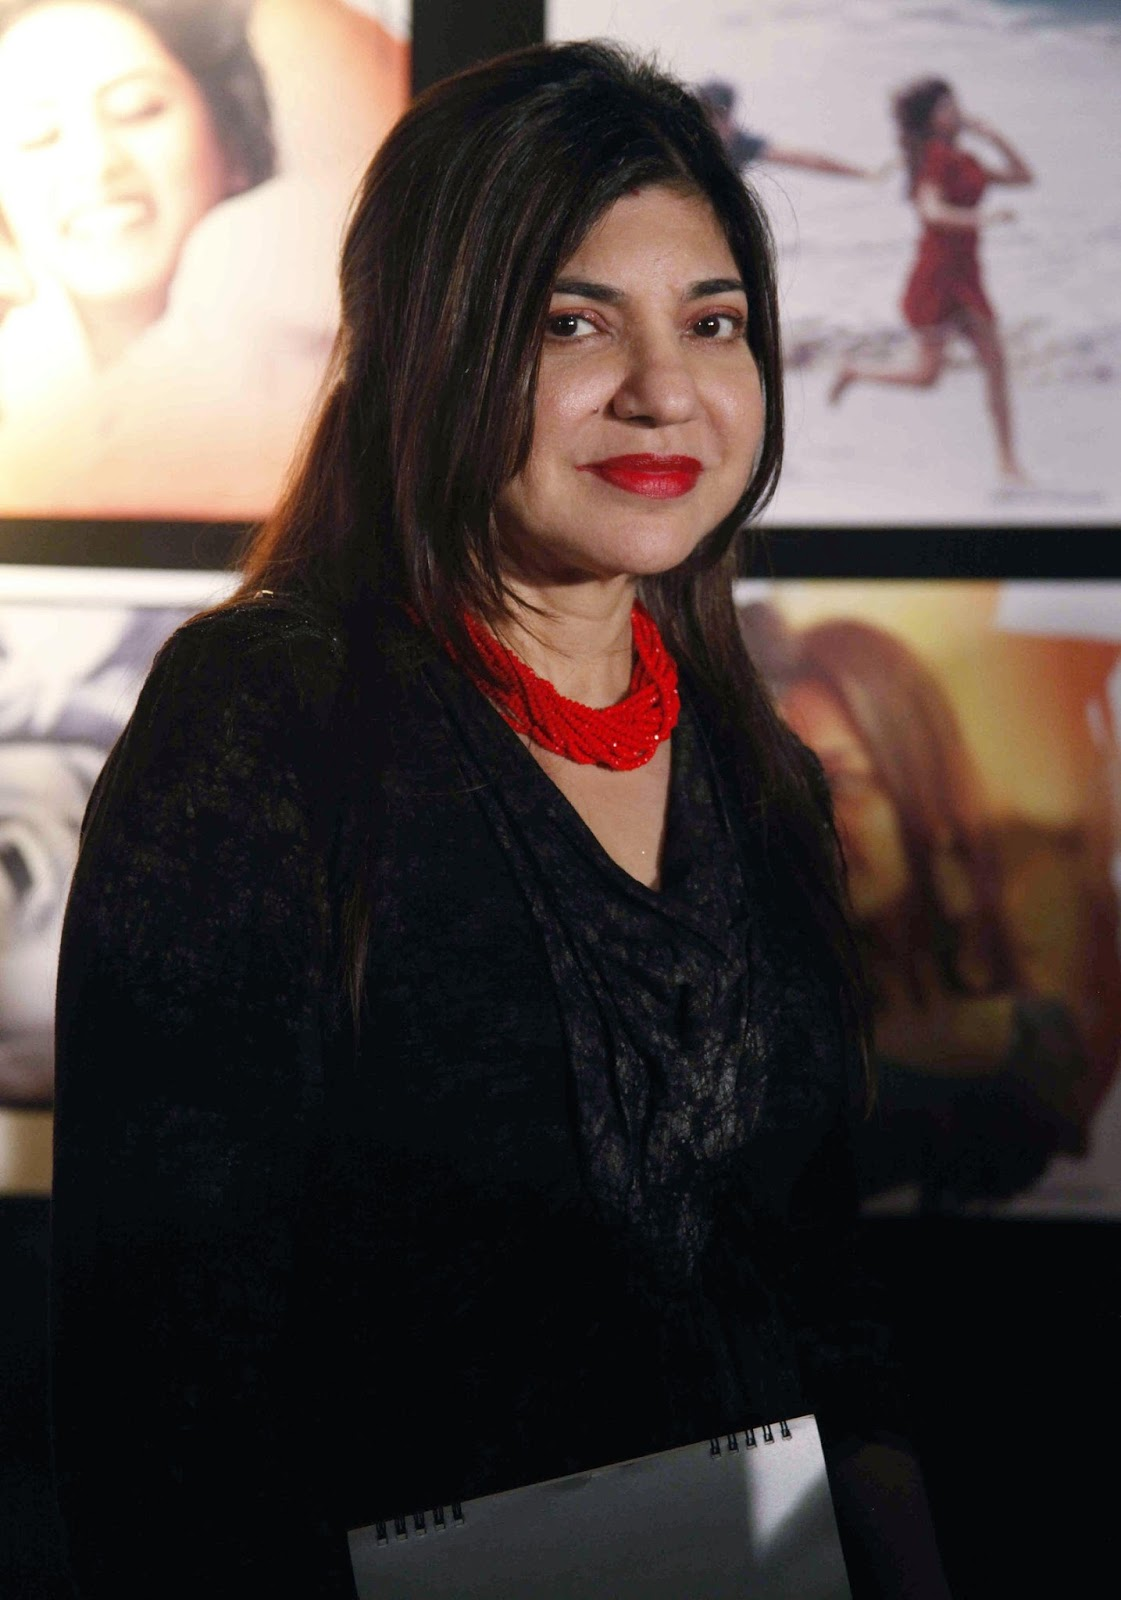 Cute Baby Girl Wallpapers For Facebook Profile Hd Alka Yagnik Images Hd Wallpaper All 4u Wallpaper